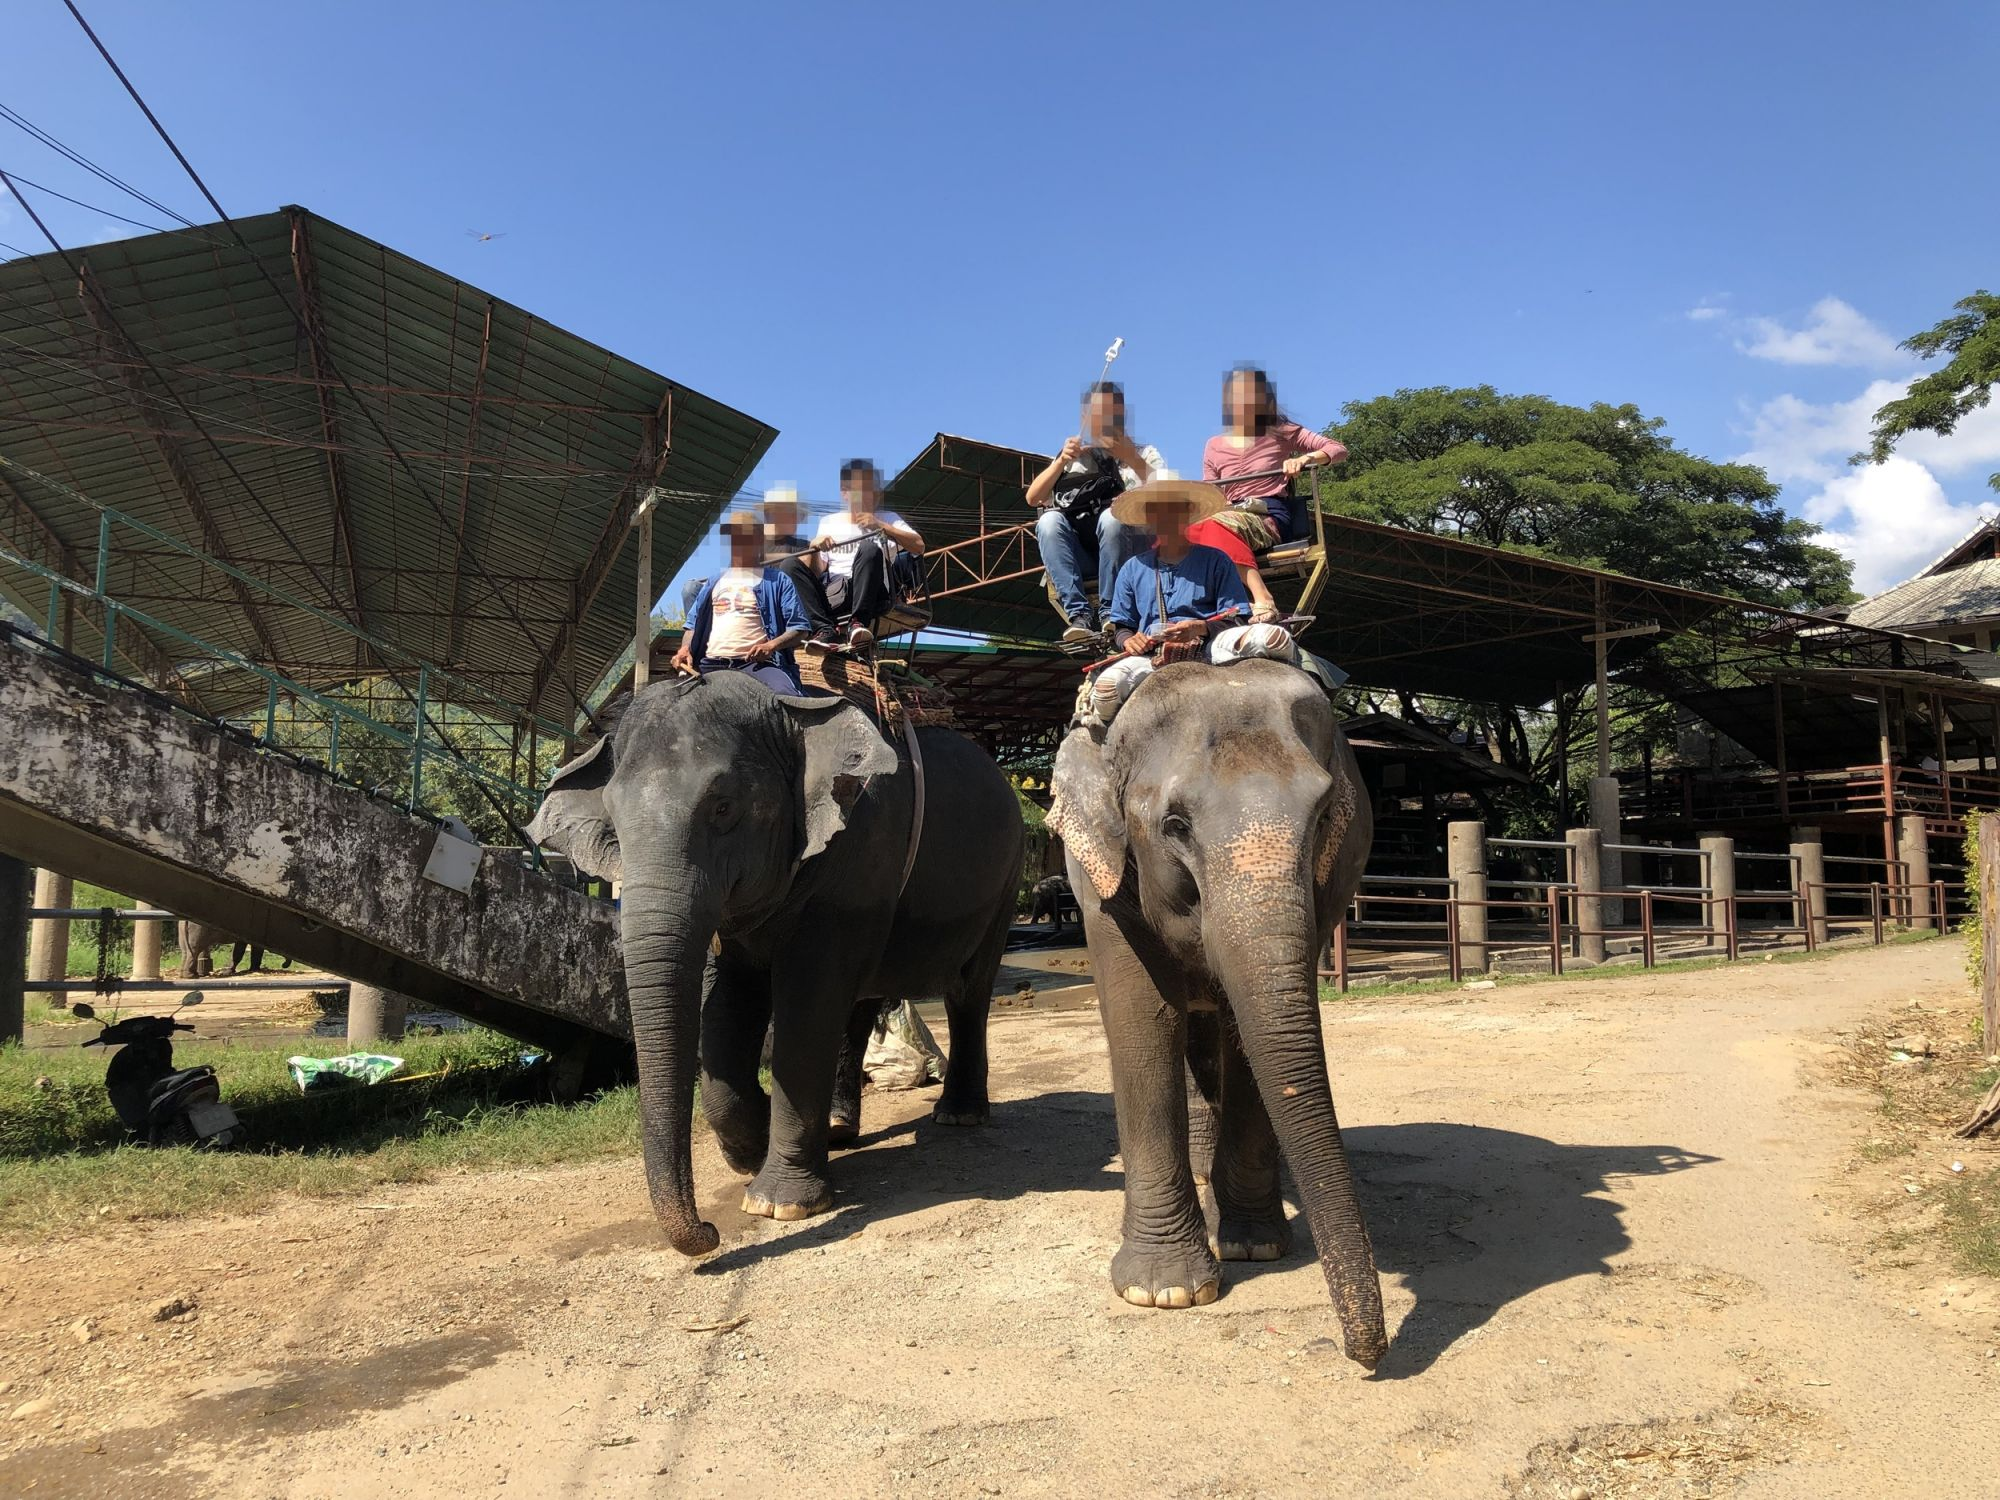 Tourists riding elephants at attraction in Thailand